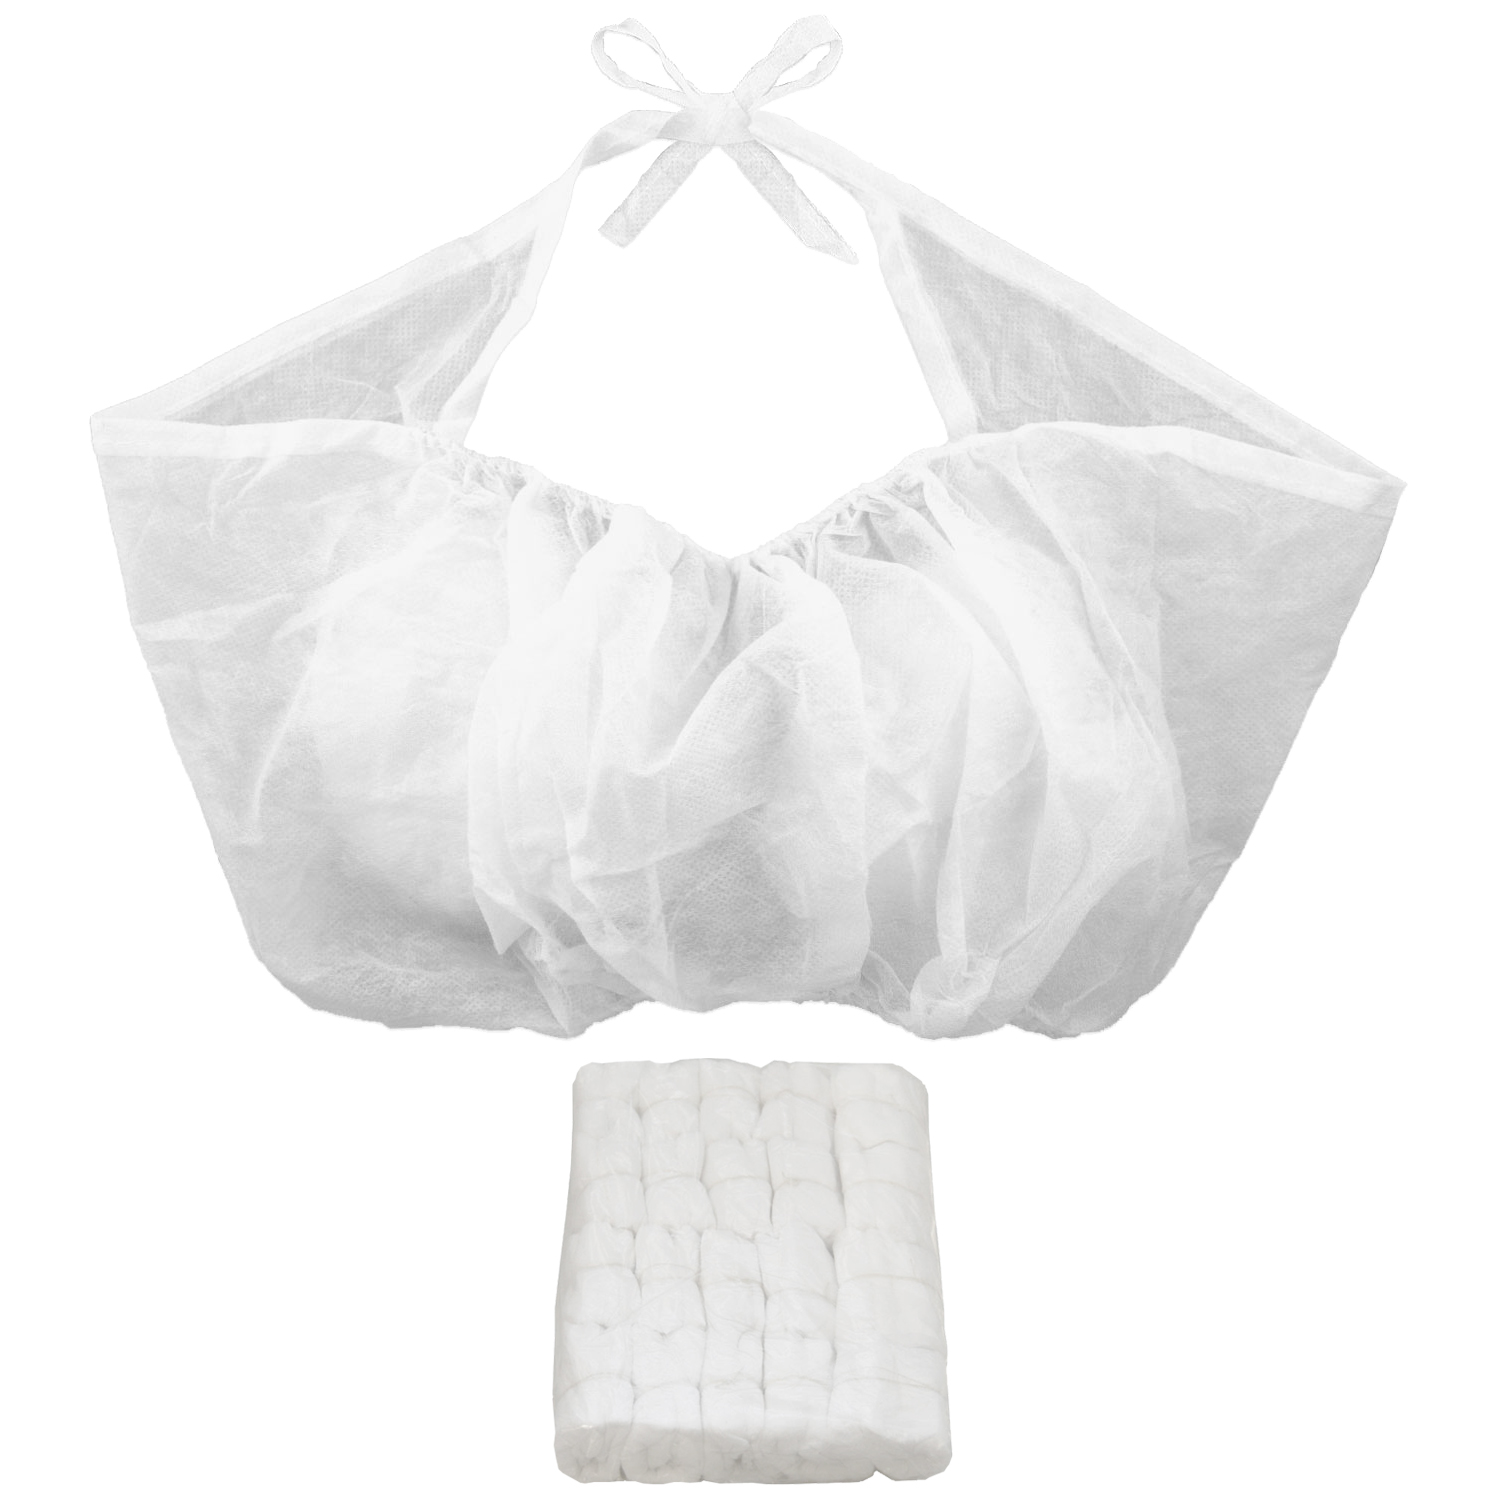 SUNLESS-TANNING-ACCESSORIES-KIT-Disposable-Sticky-Feet-Cap-Bra-Panty-Nose-Filter